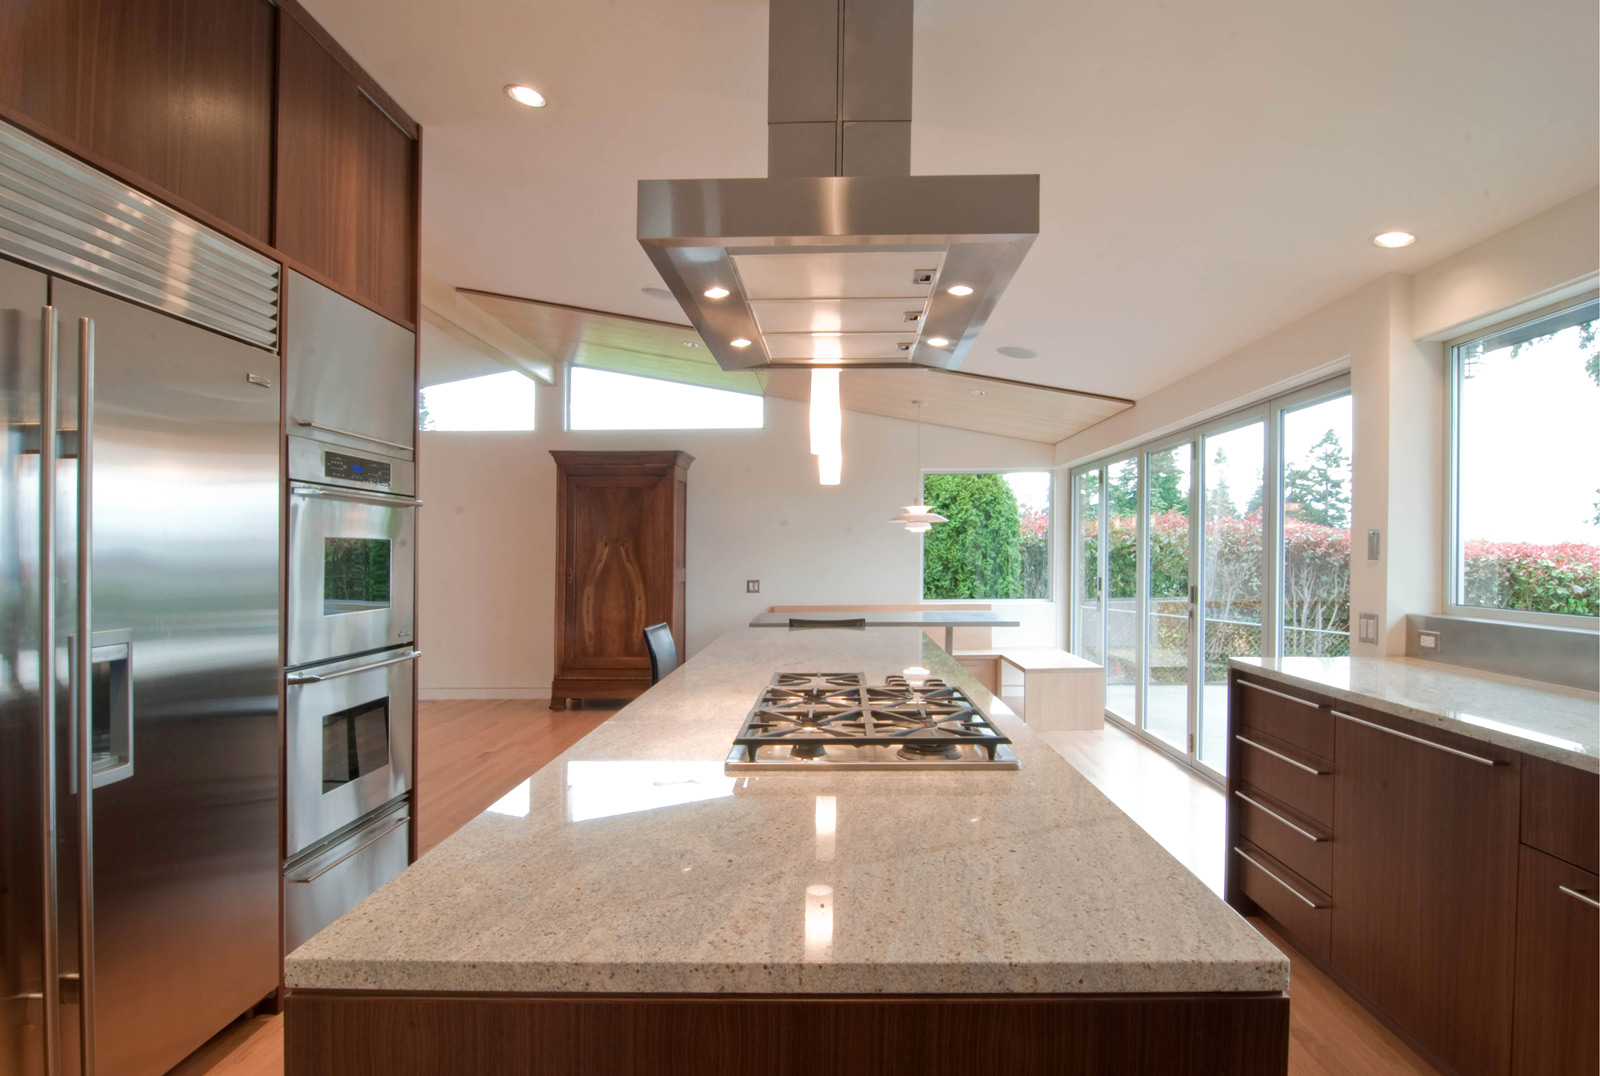 Design strategies for kitchen hood venting build blog design strategies for kitchen hood venting aloadofball Gallery